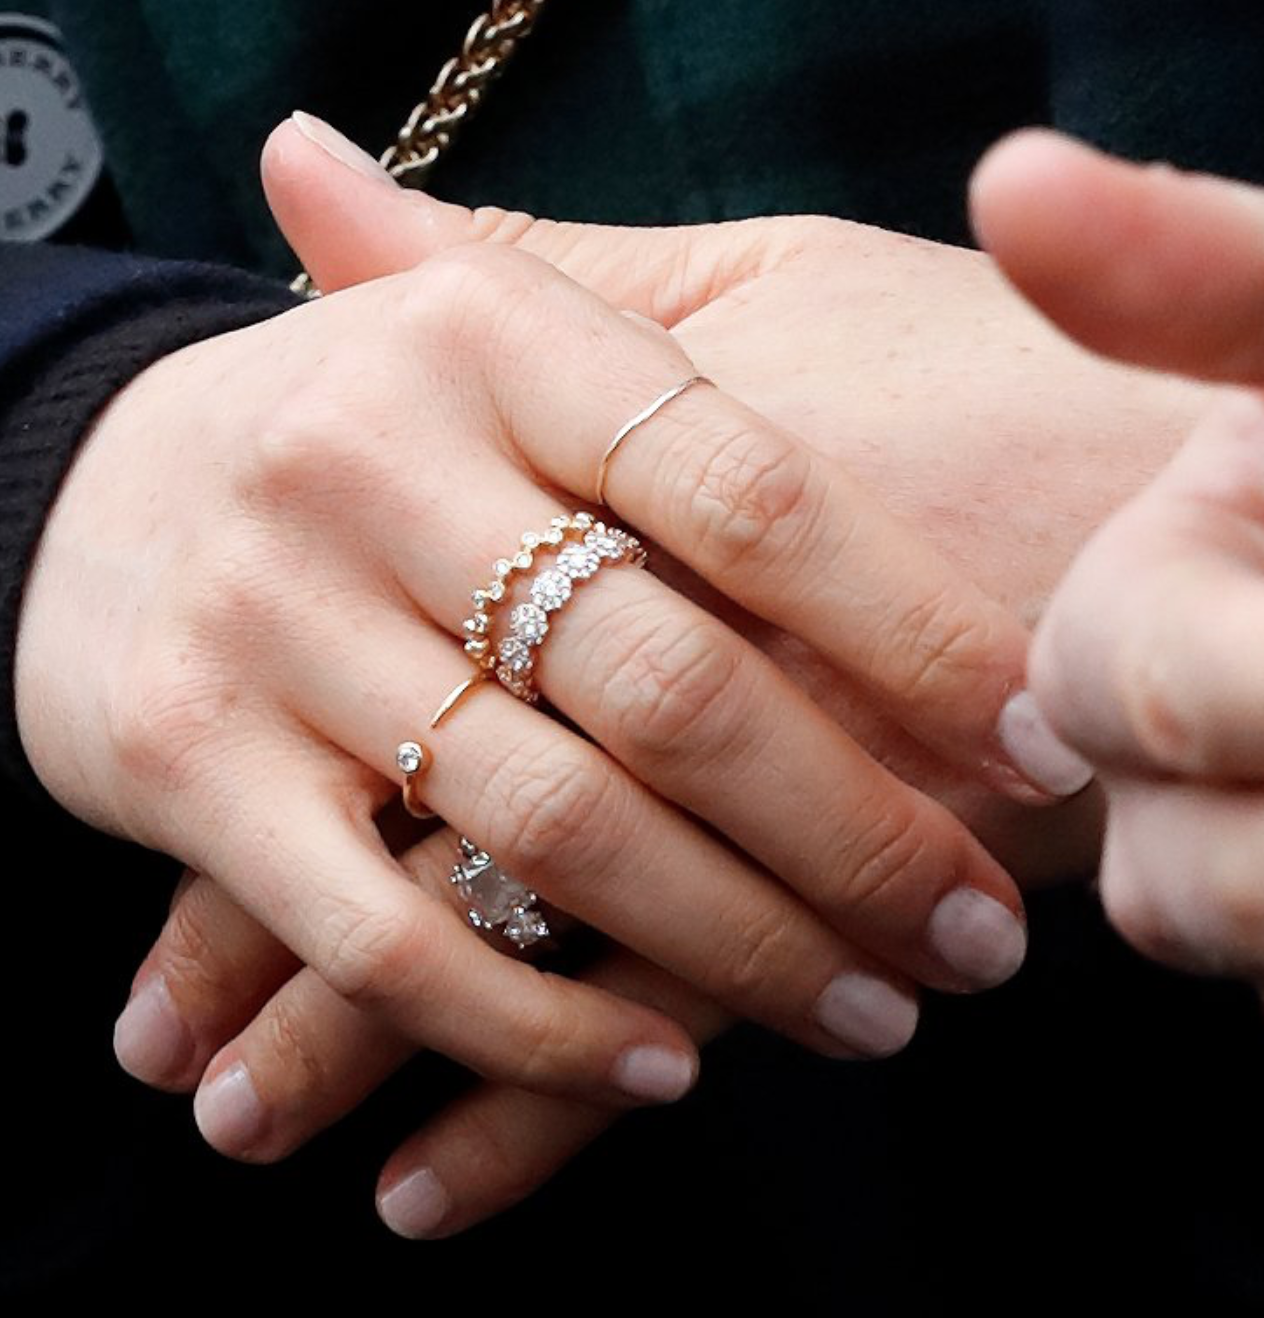 Proving Markle likes sparkle: Meghan's existing ring collection features dainty diamond eternity bands